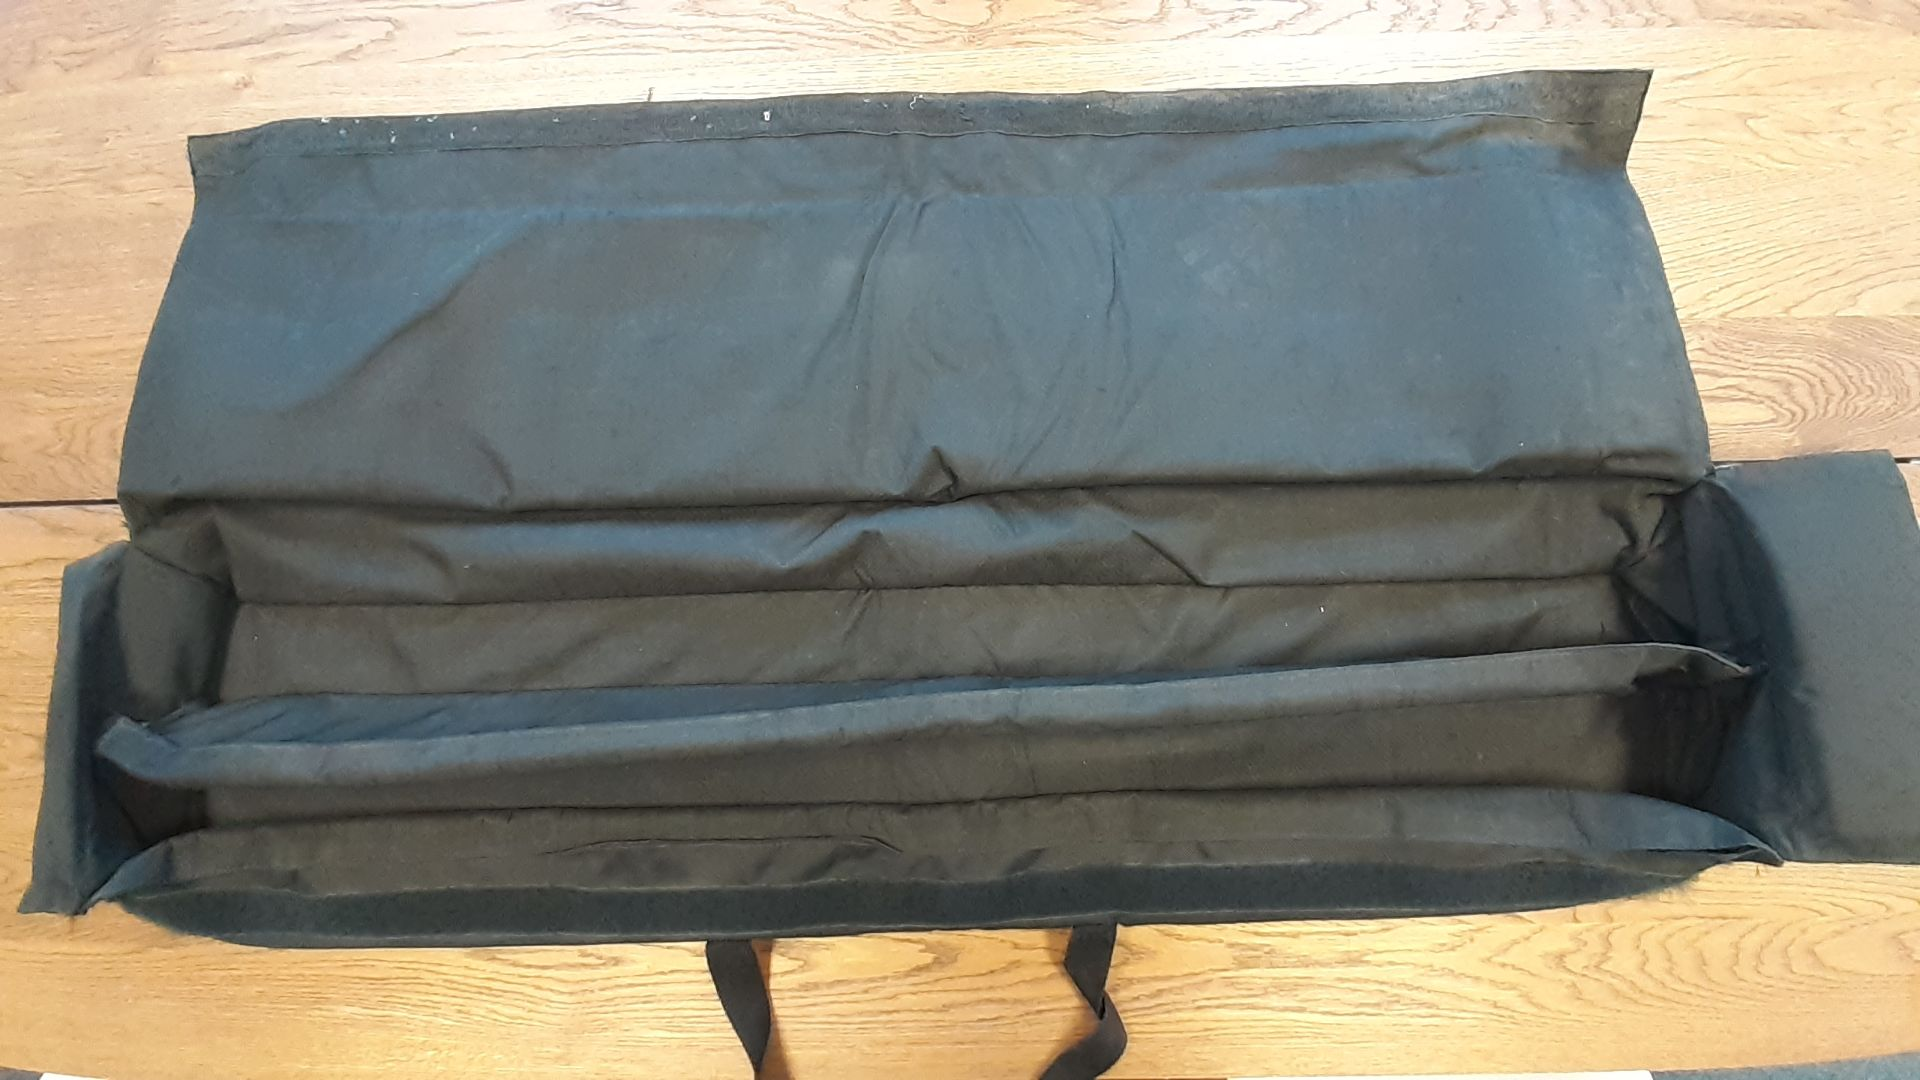 8 x Padded Speaker Stand Bags with velcro closures, branded 'Light Fantastic Production Services', - Image 2 of 2